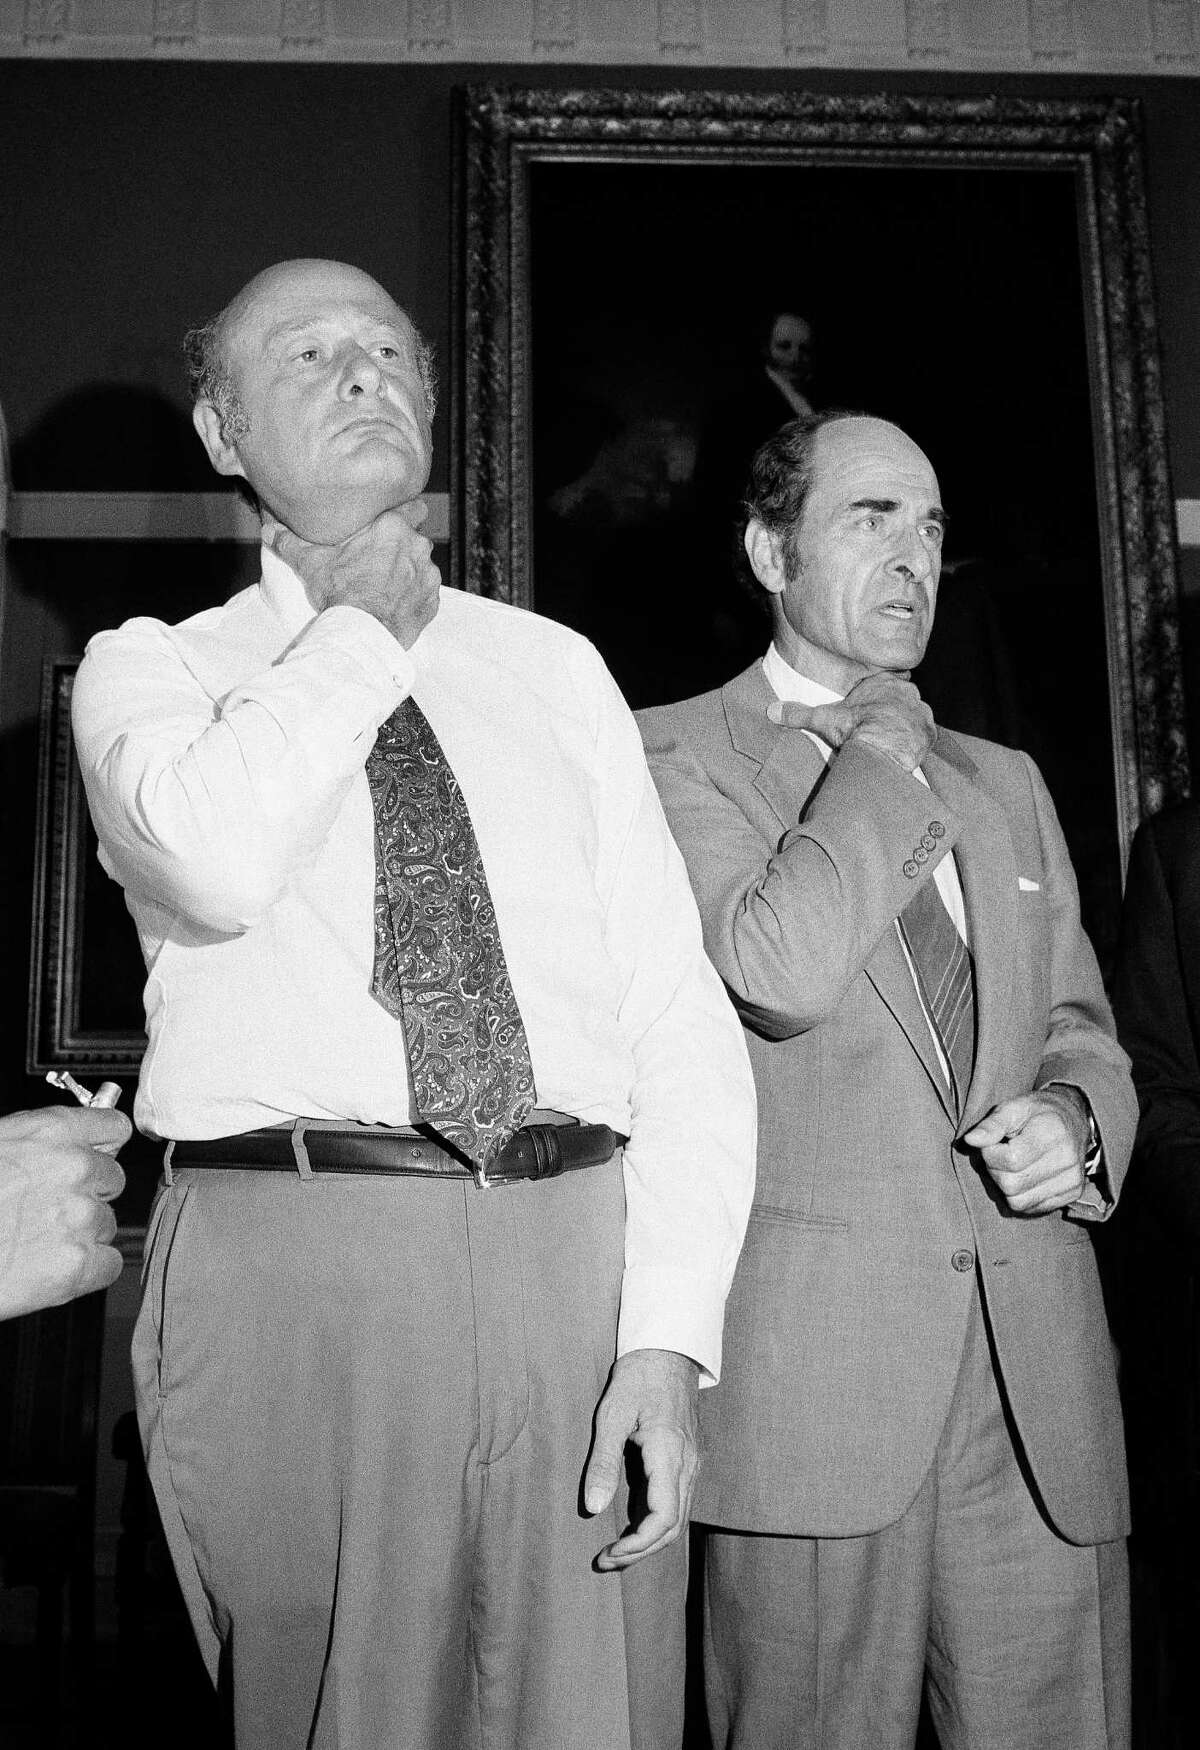 Dr. Henry Heimlich, right, and Mayor Edward Koch demonstrate how a chocking victim should signal for help at New York's City Hall during Heimlich's discussion of his Heimlich Maneuver.